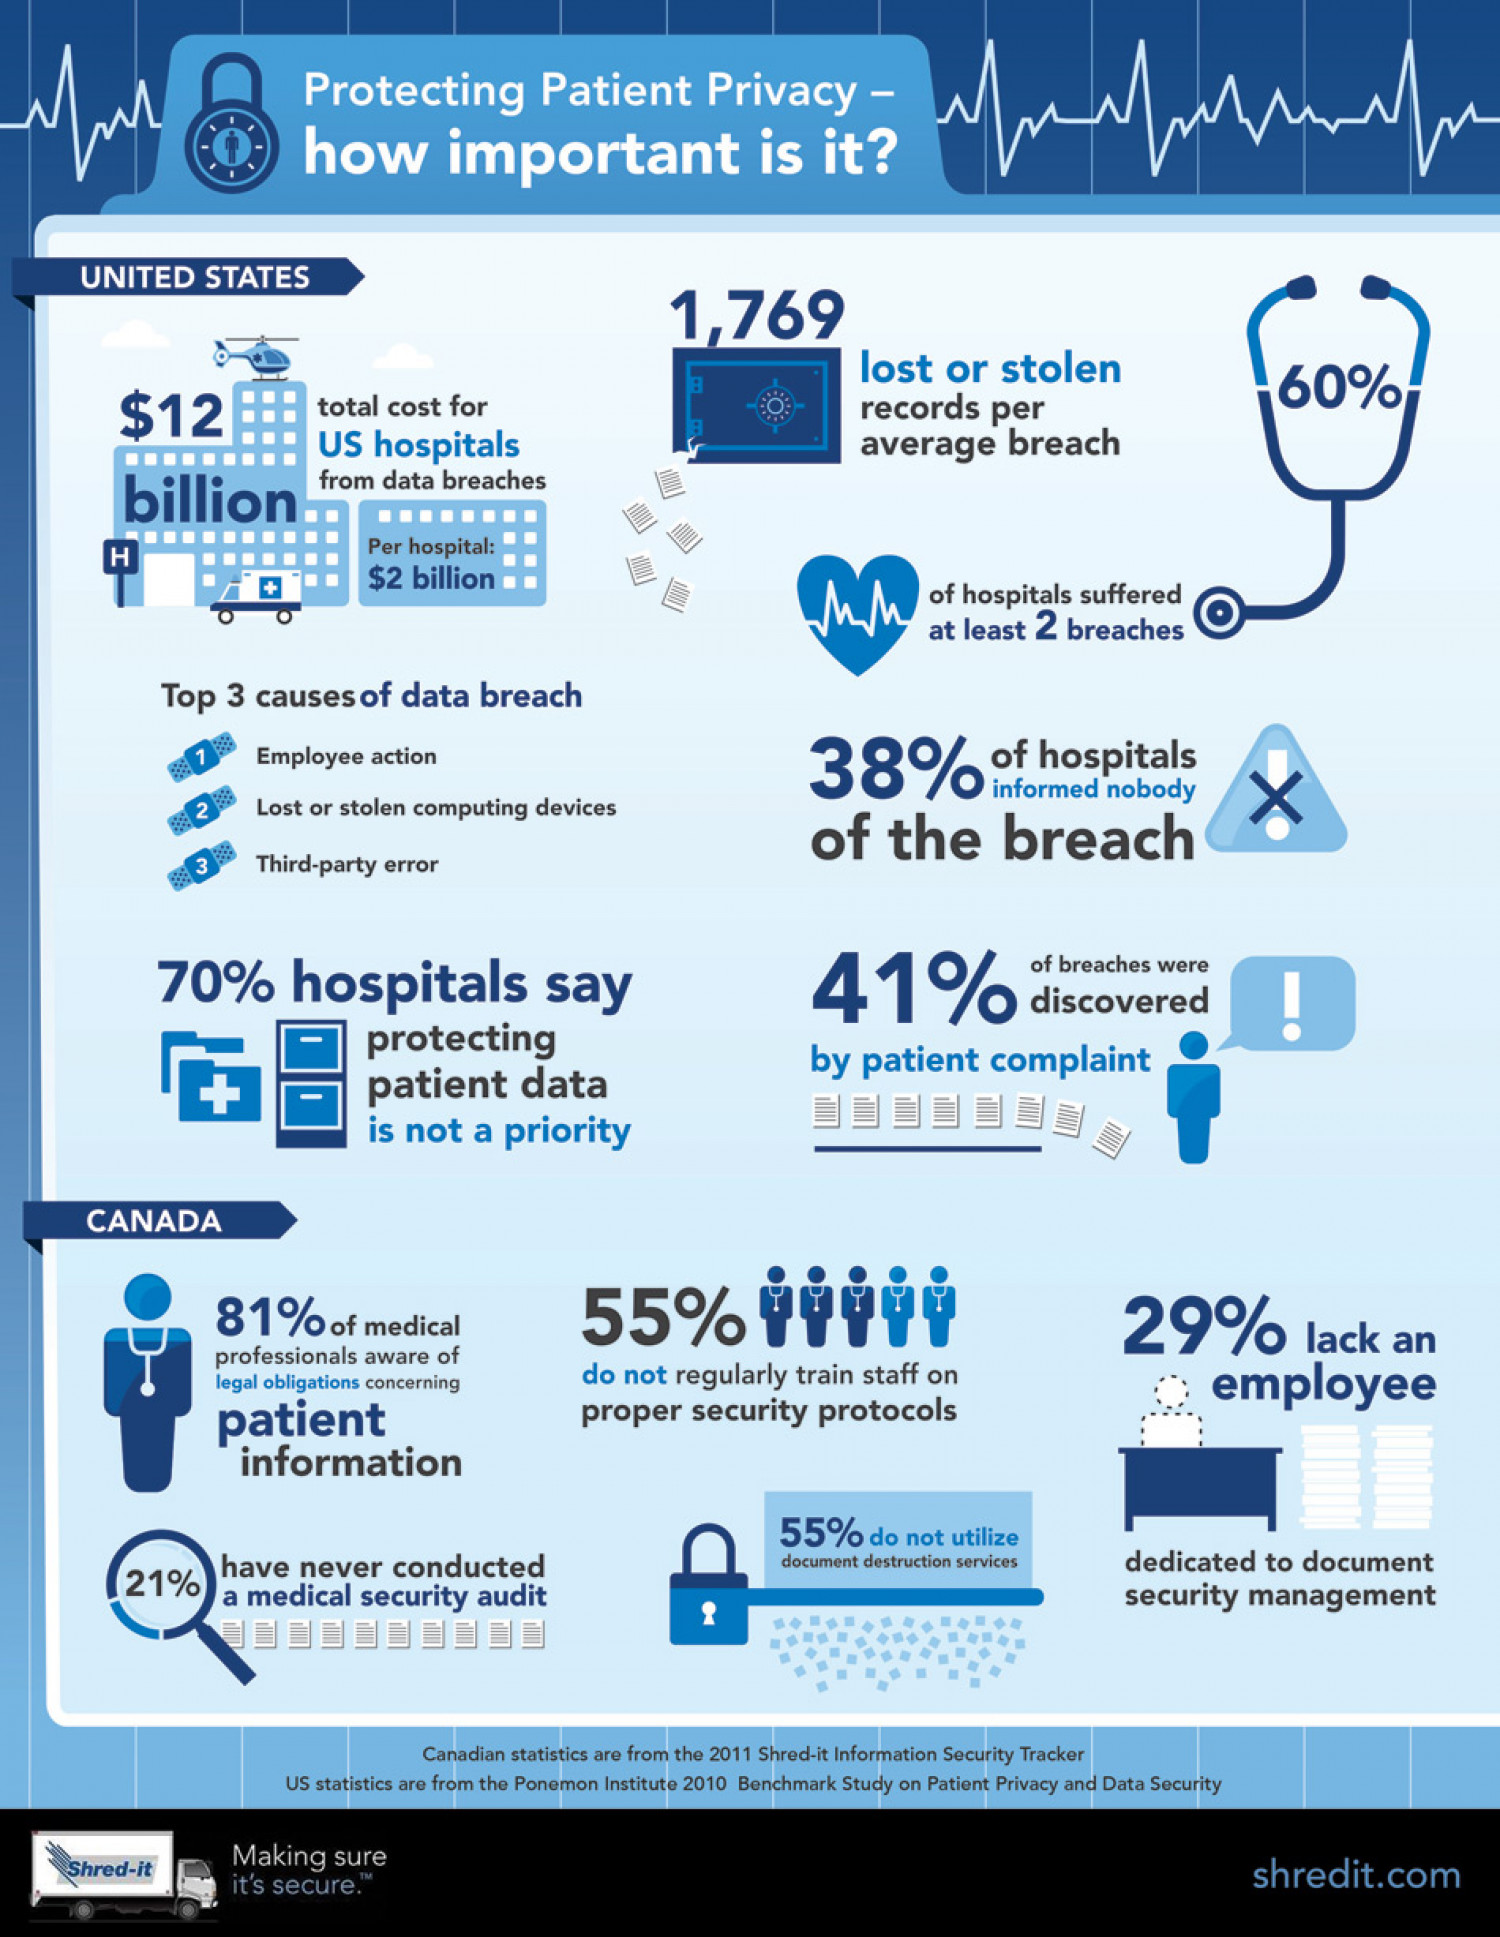 Protecting Patient Privacy: How Important Is It? Infographic